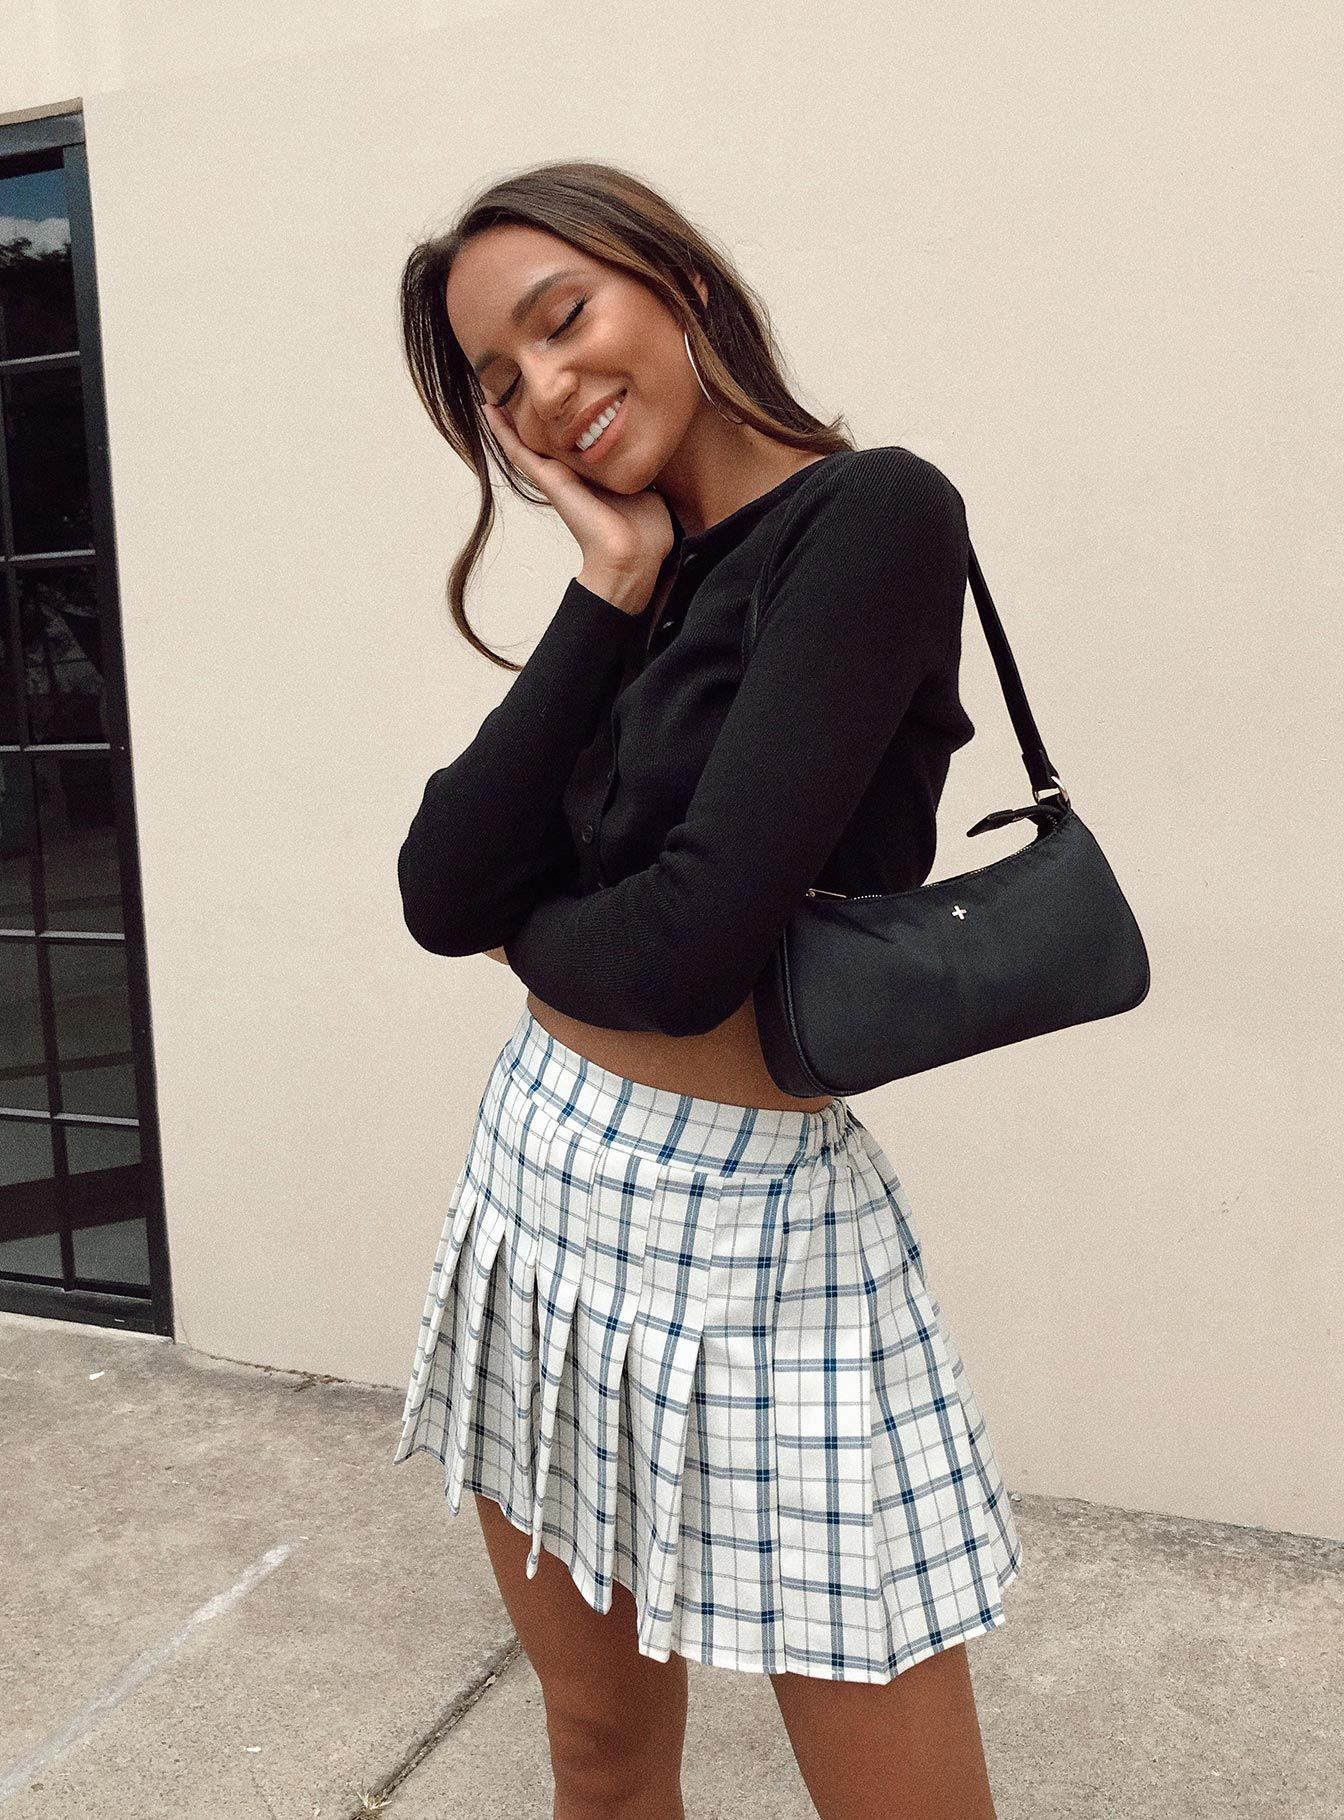 Checkered mini skirt outfits